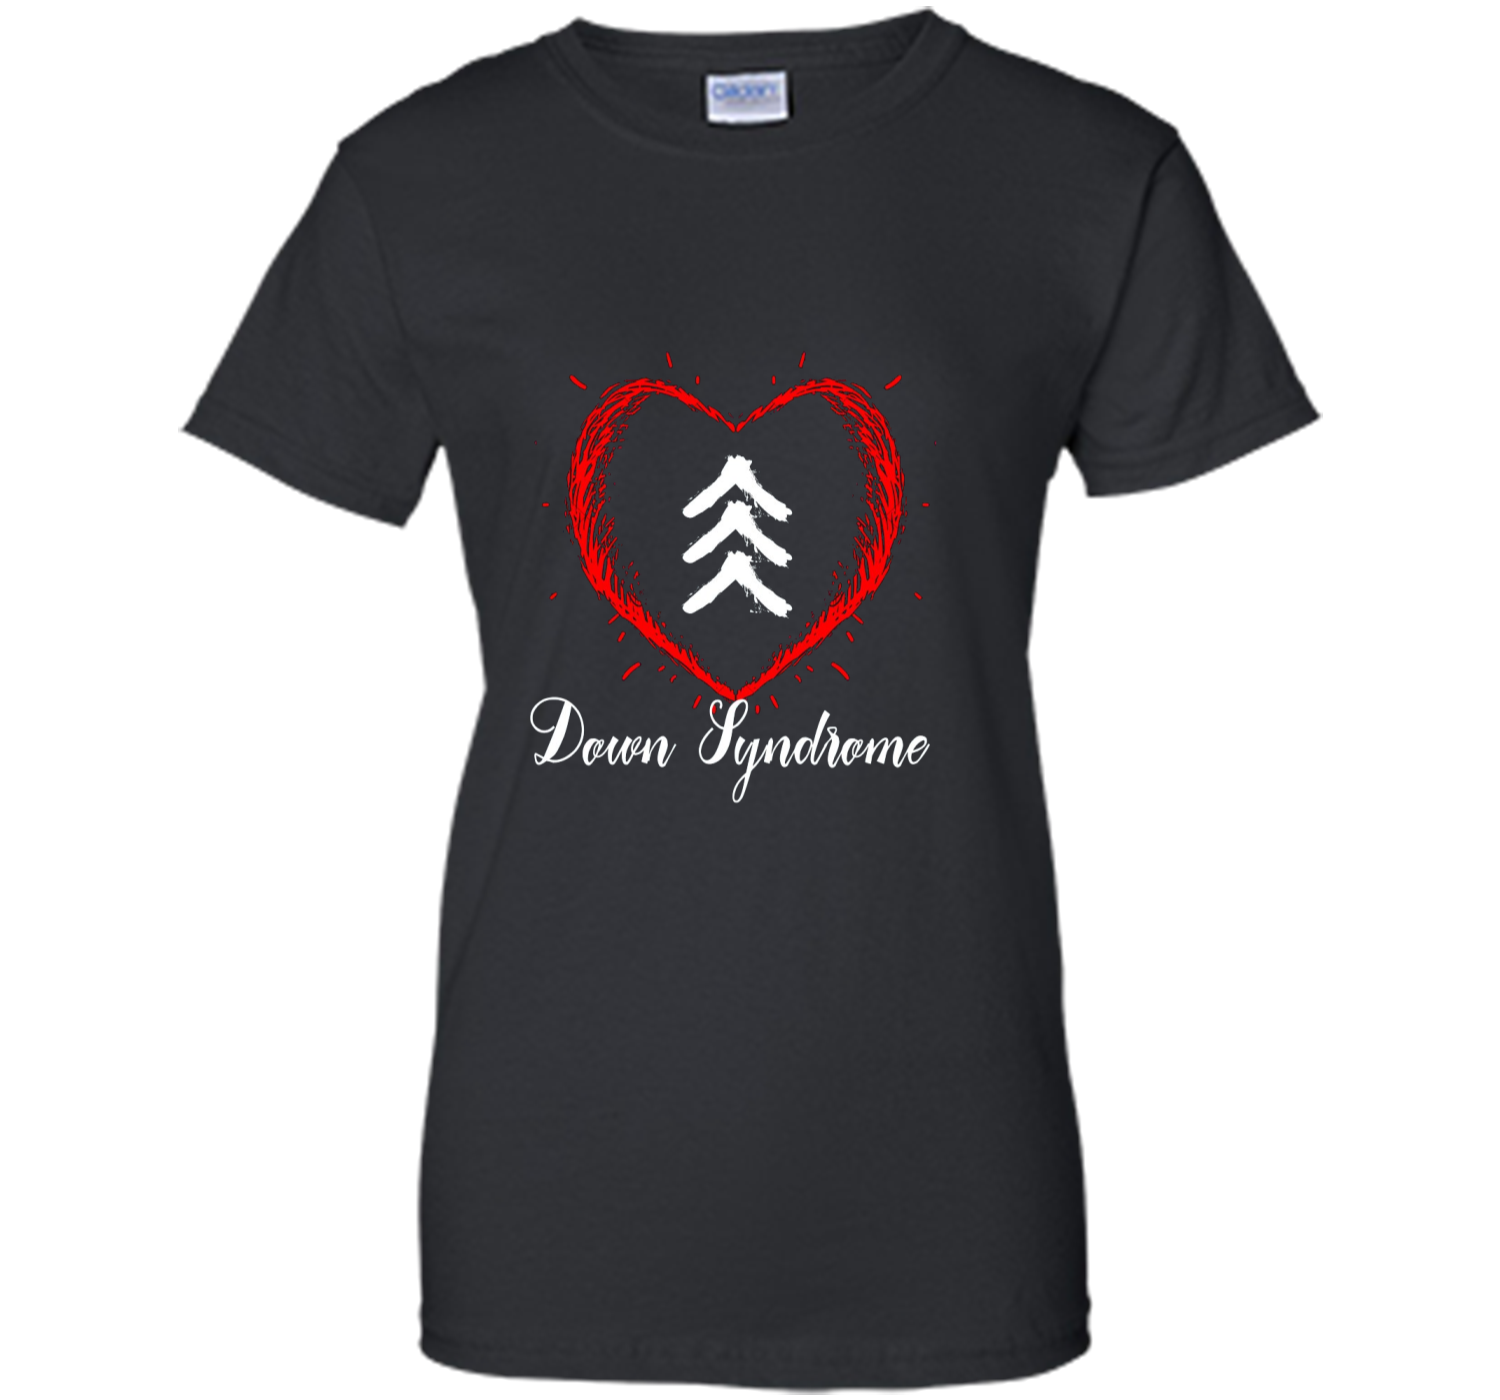 0541d3b6ac609 Love World Down Syndrome Awareness Day Love 3 Arrows Shirt Ladies ...